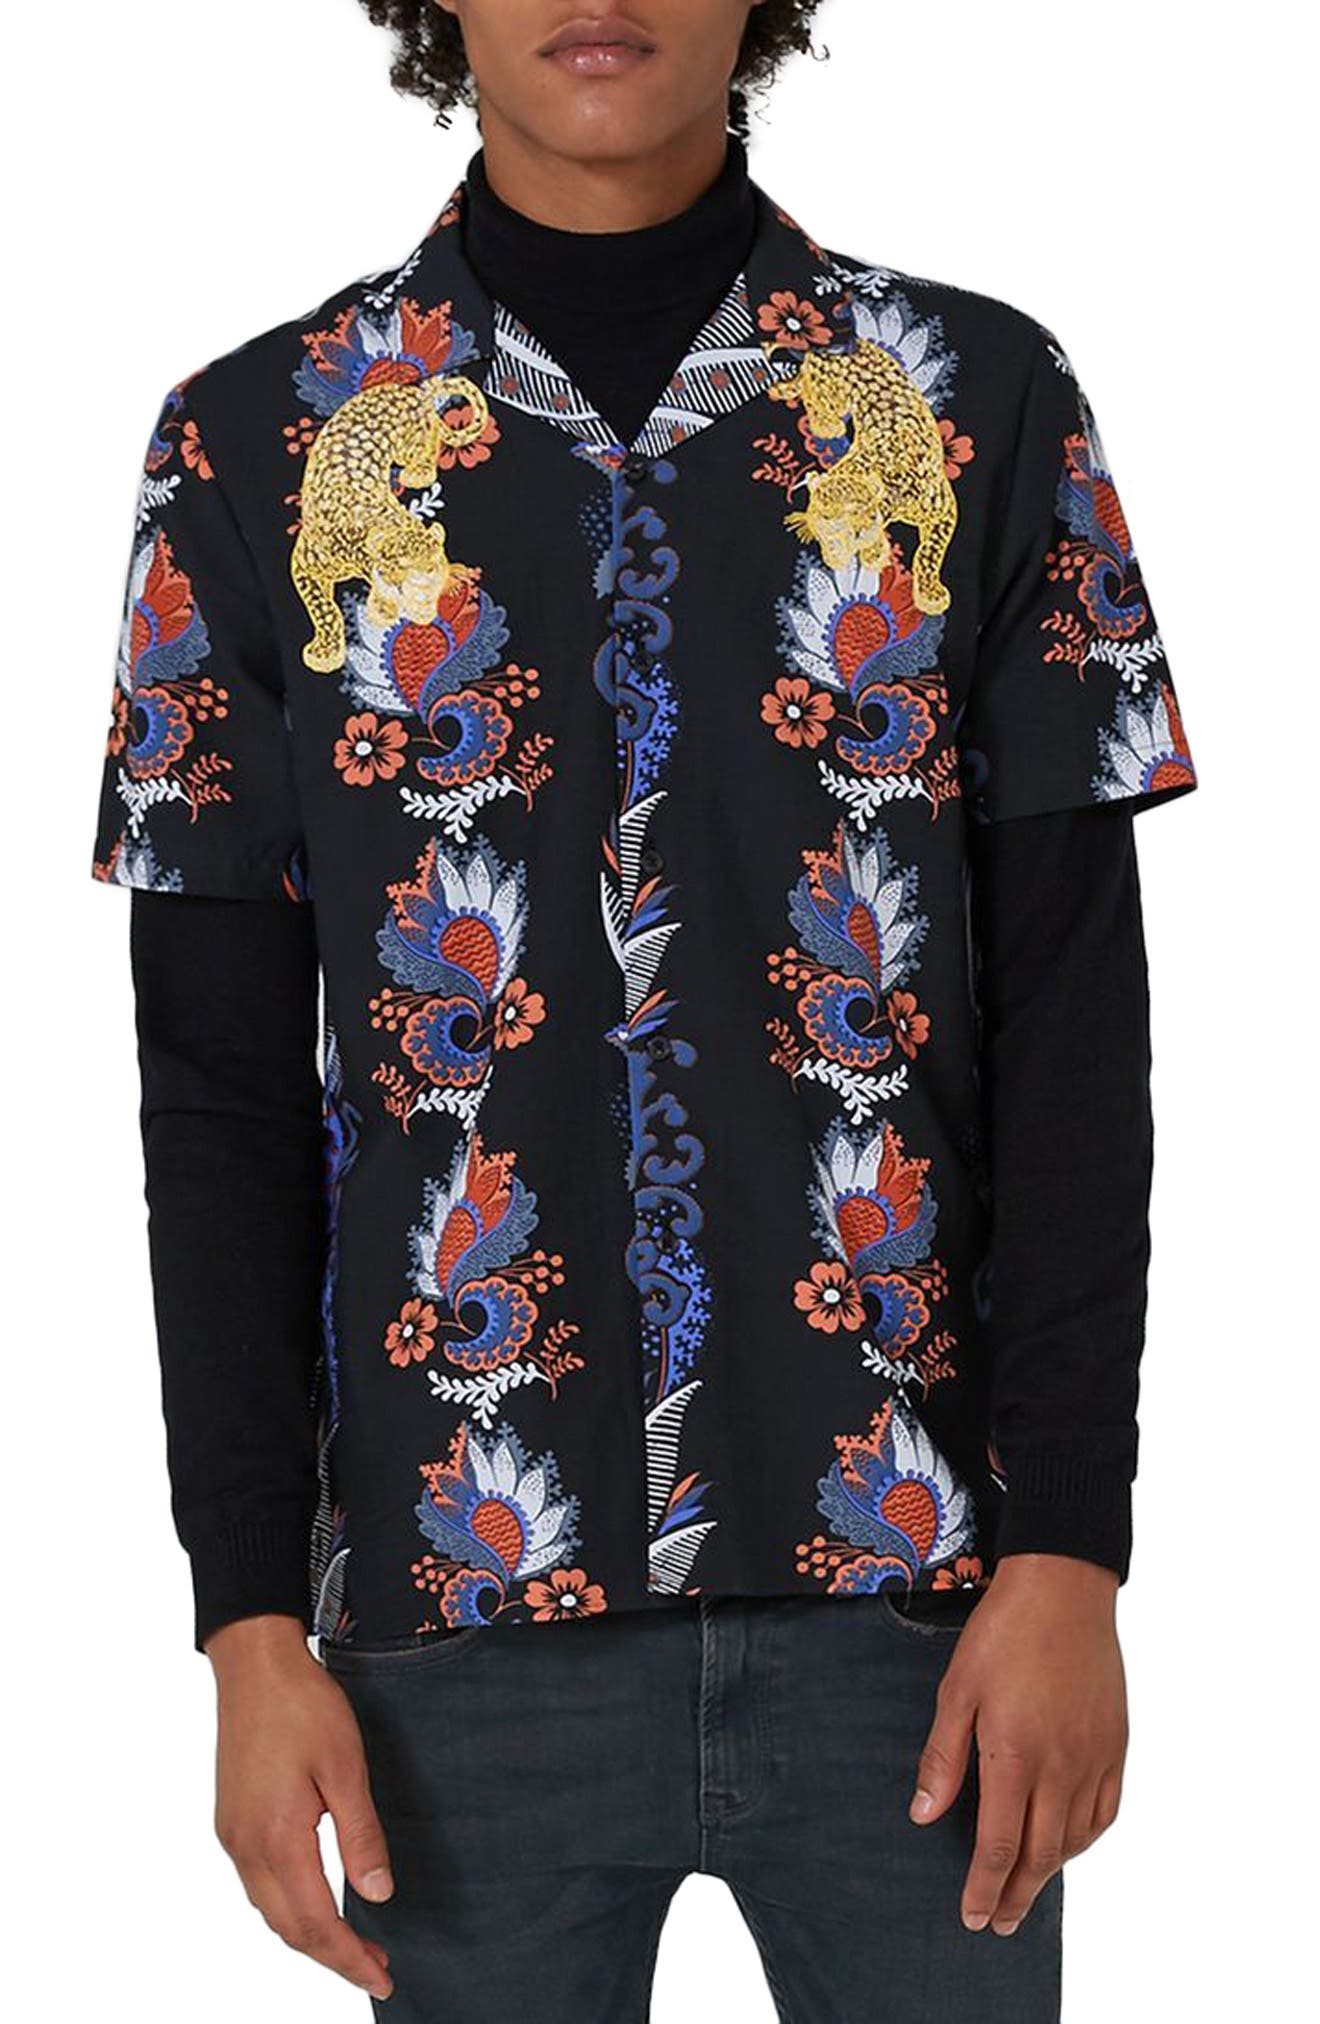 Topman Embroidered Tiger Print Revere Collar Shirt